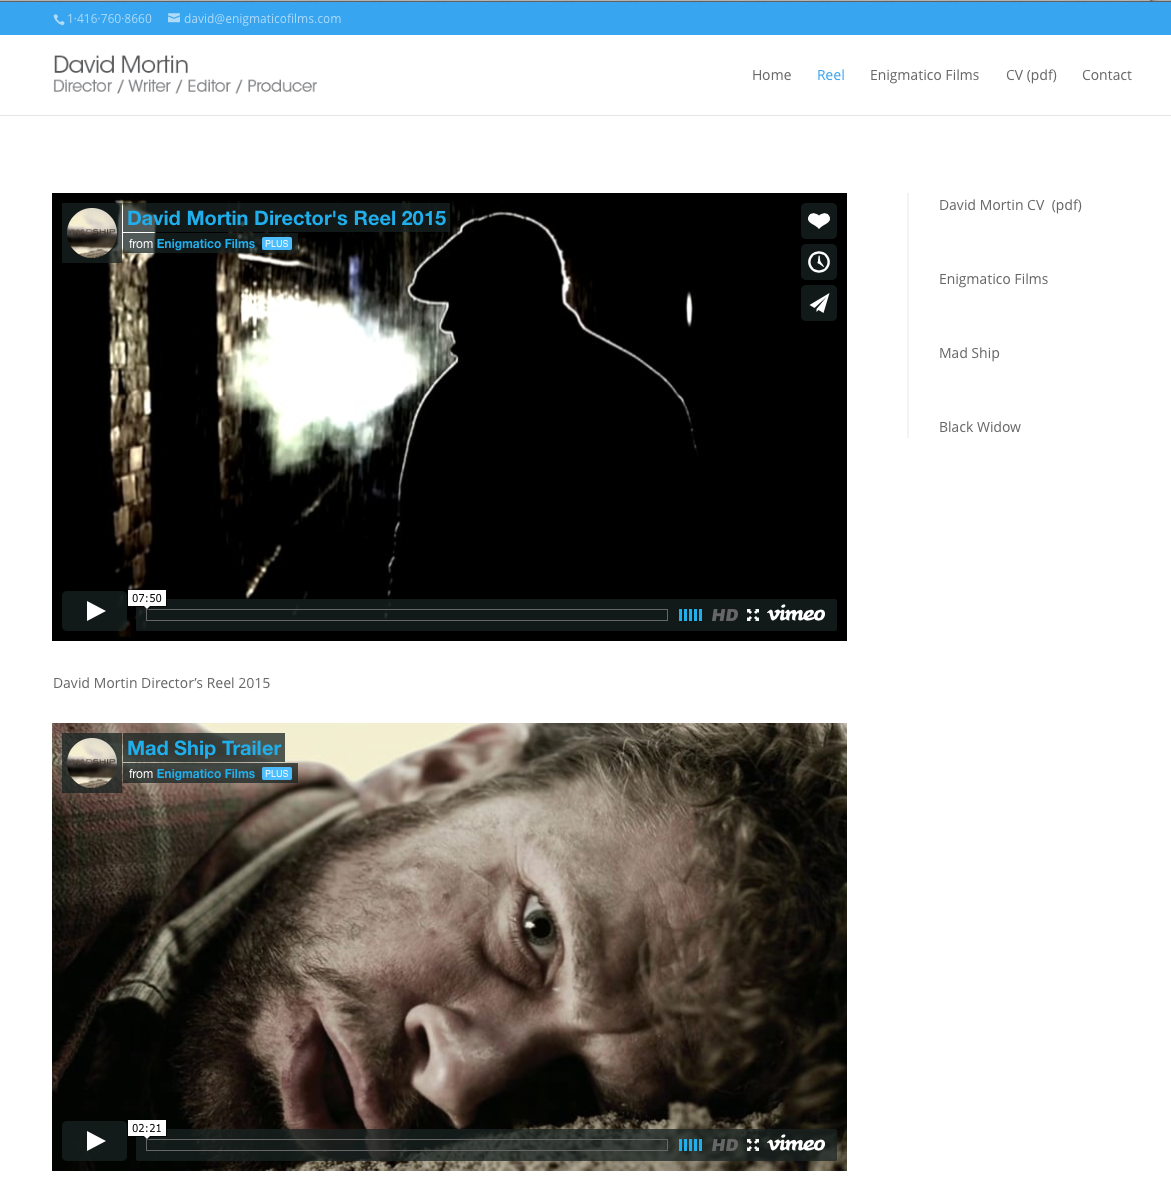 Page from website showing video feeds from several showcase reels